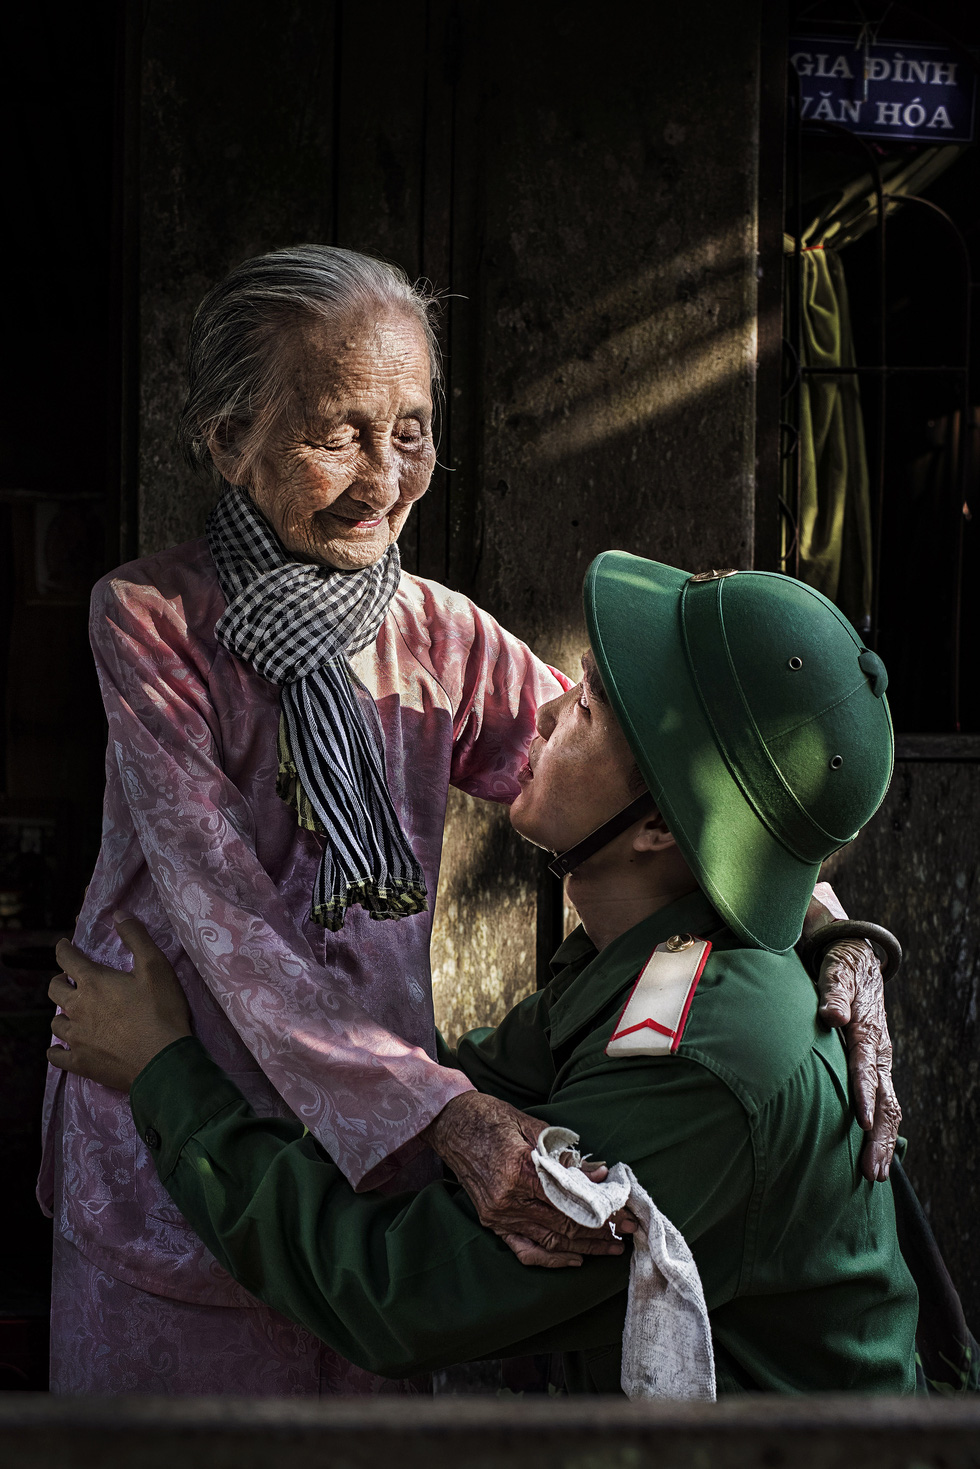 Photo 'Anh mat cua ngoai' (Grandmother's look) by Nguyen Van Luan